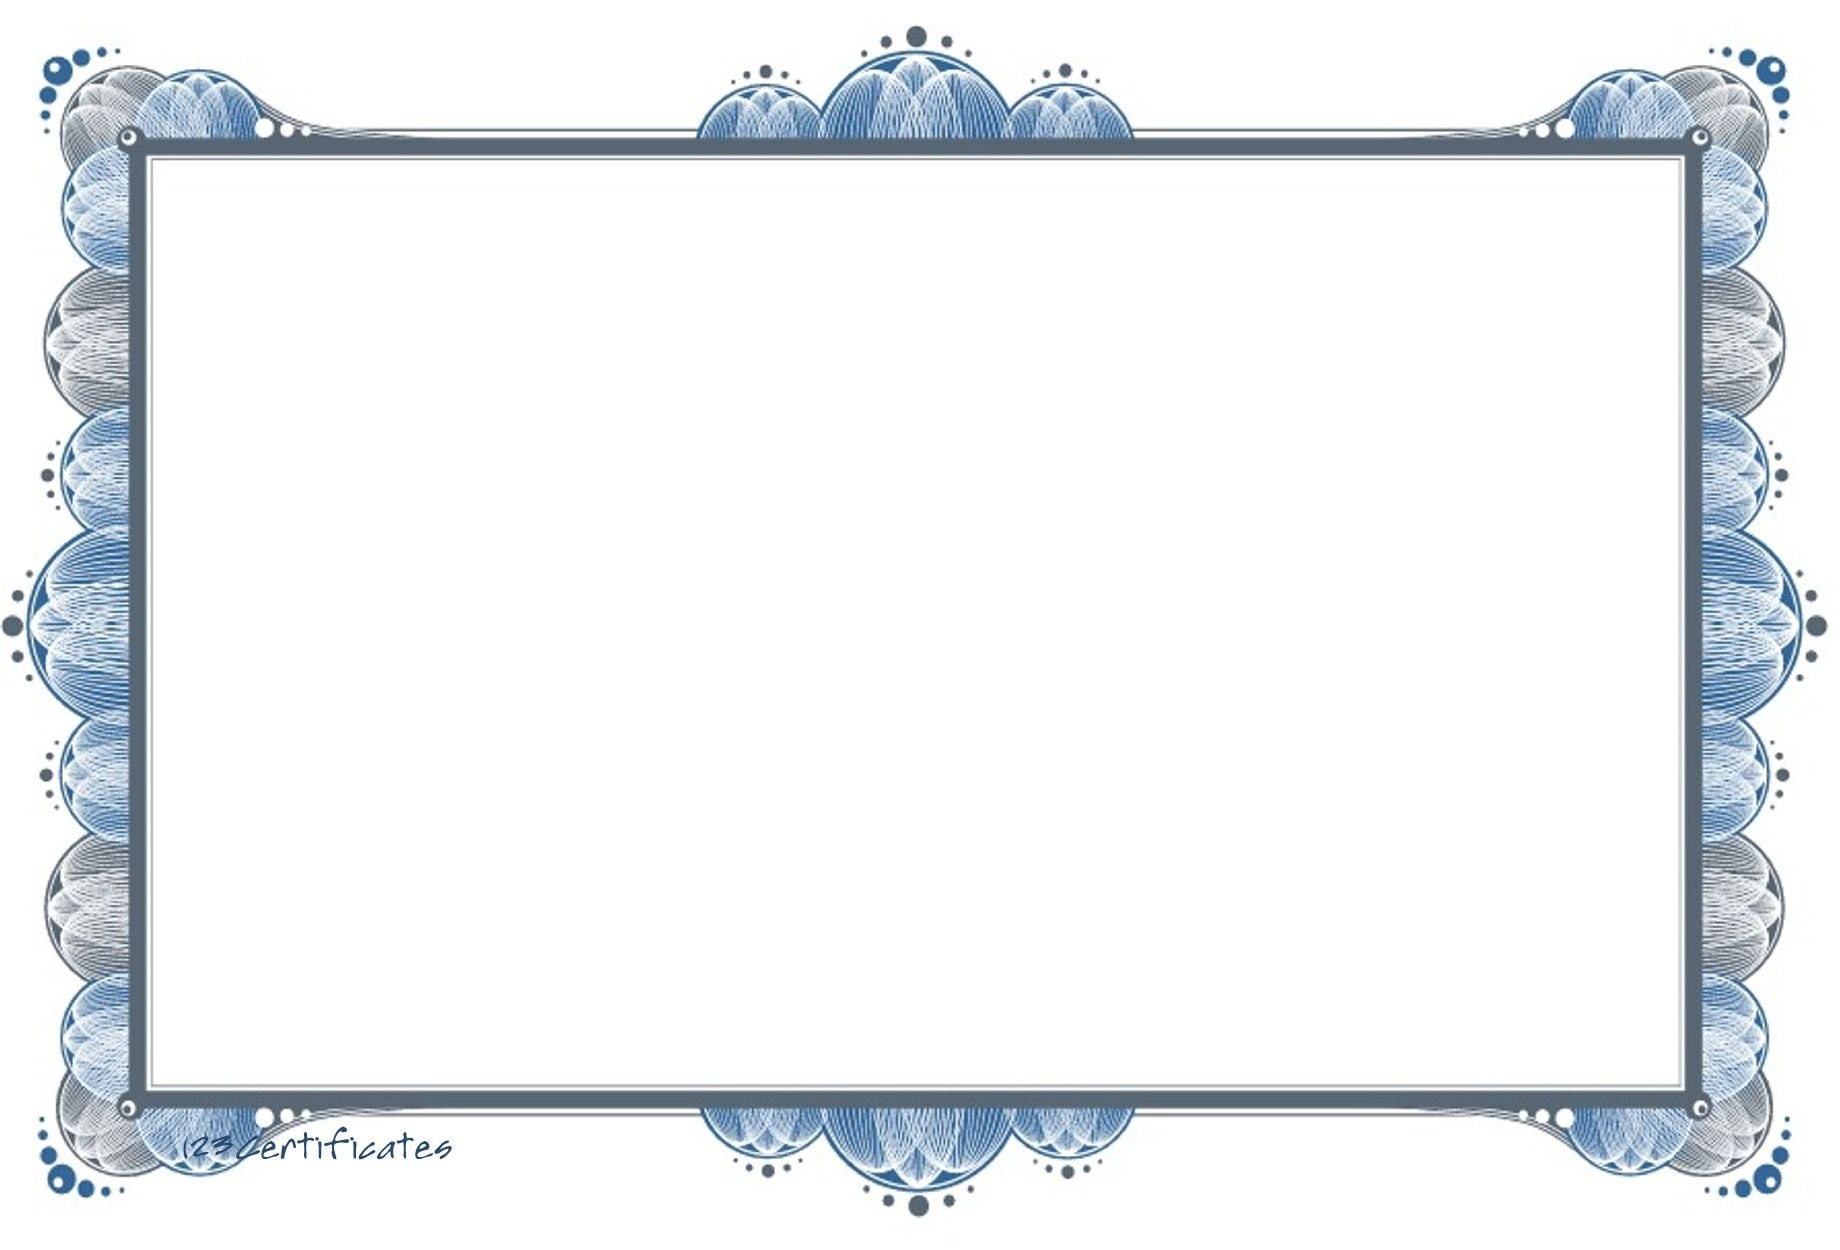 Free Templates  Free Certificate Border Artwork Certificate In Blank Coupon Template Printable